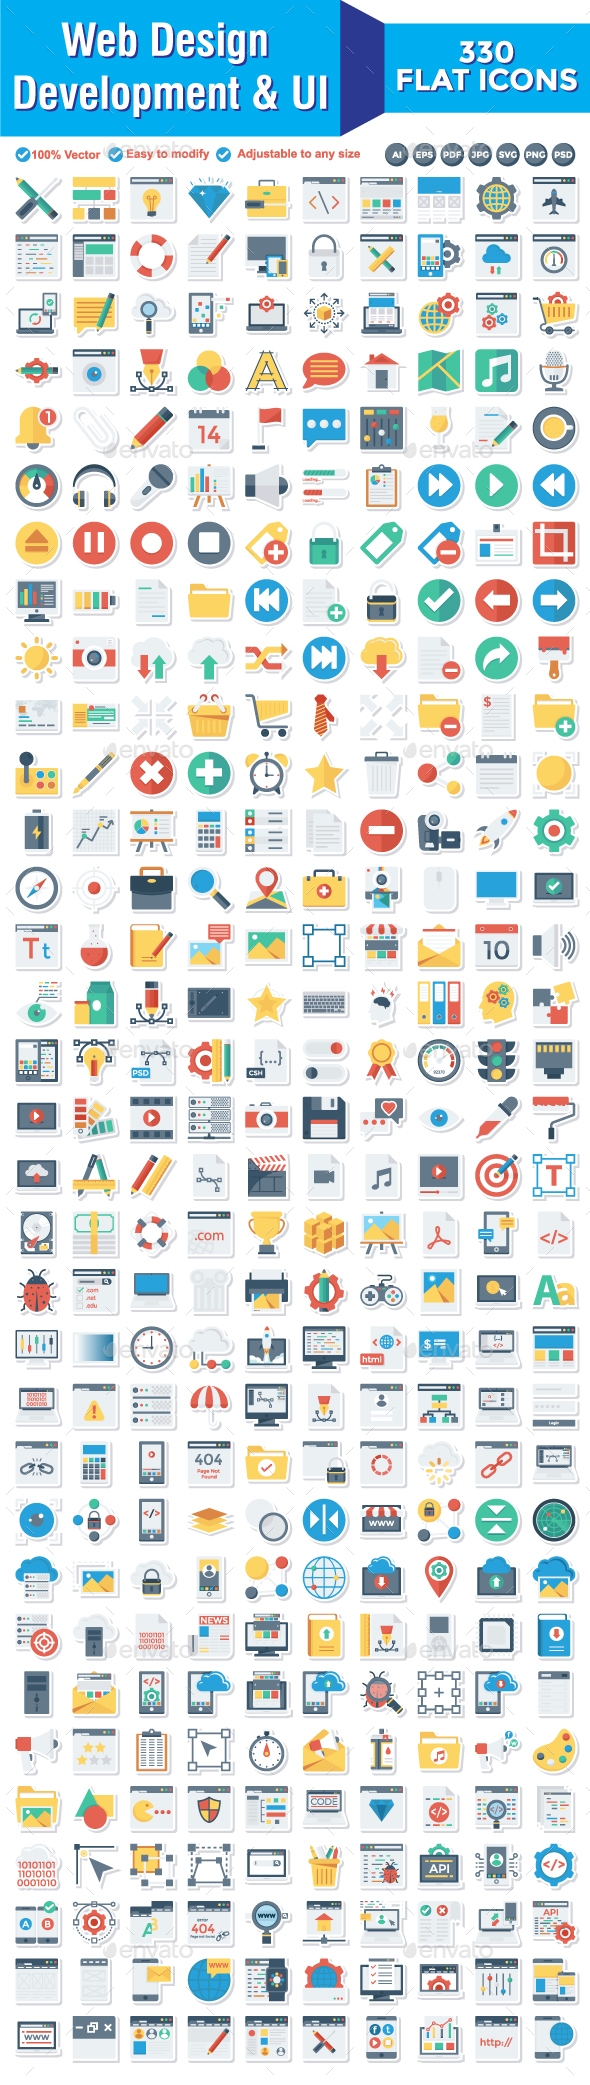 330 Web Design Development & UI  Paper icons - Web Icons